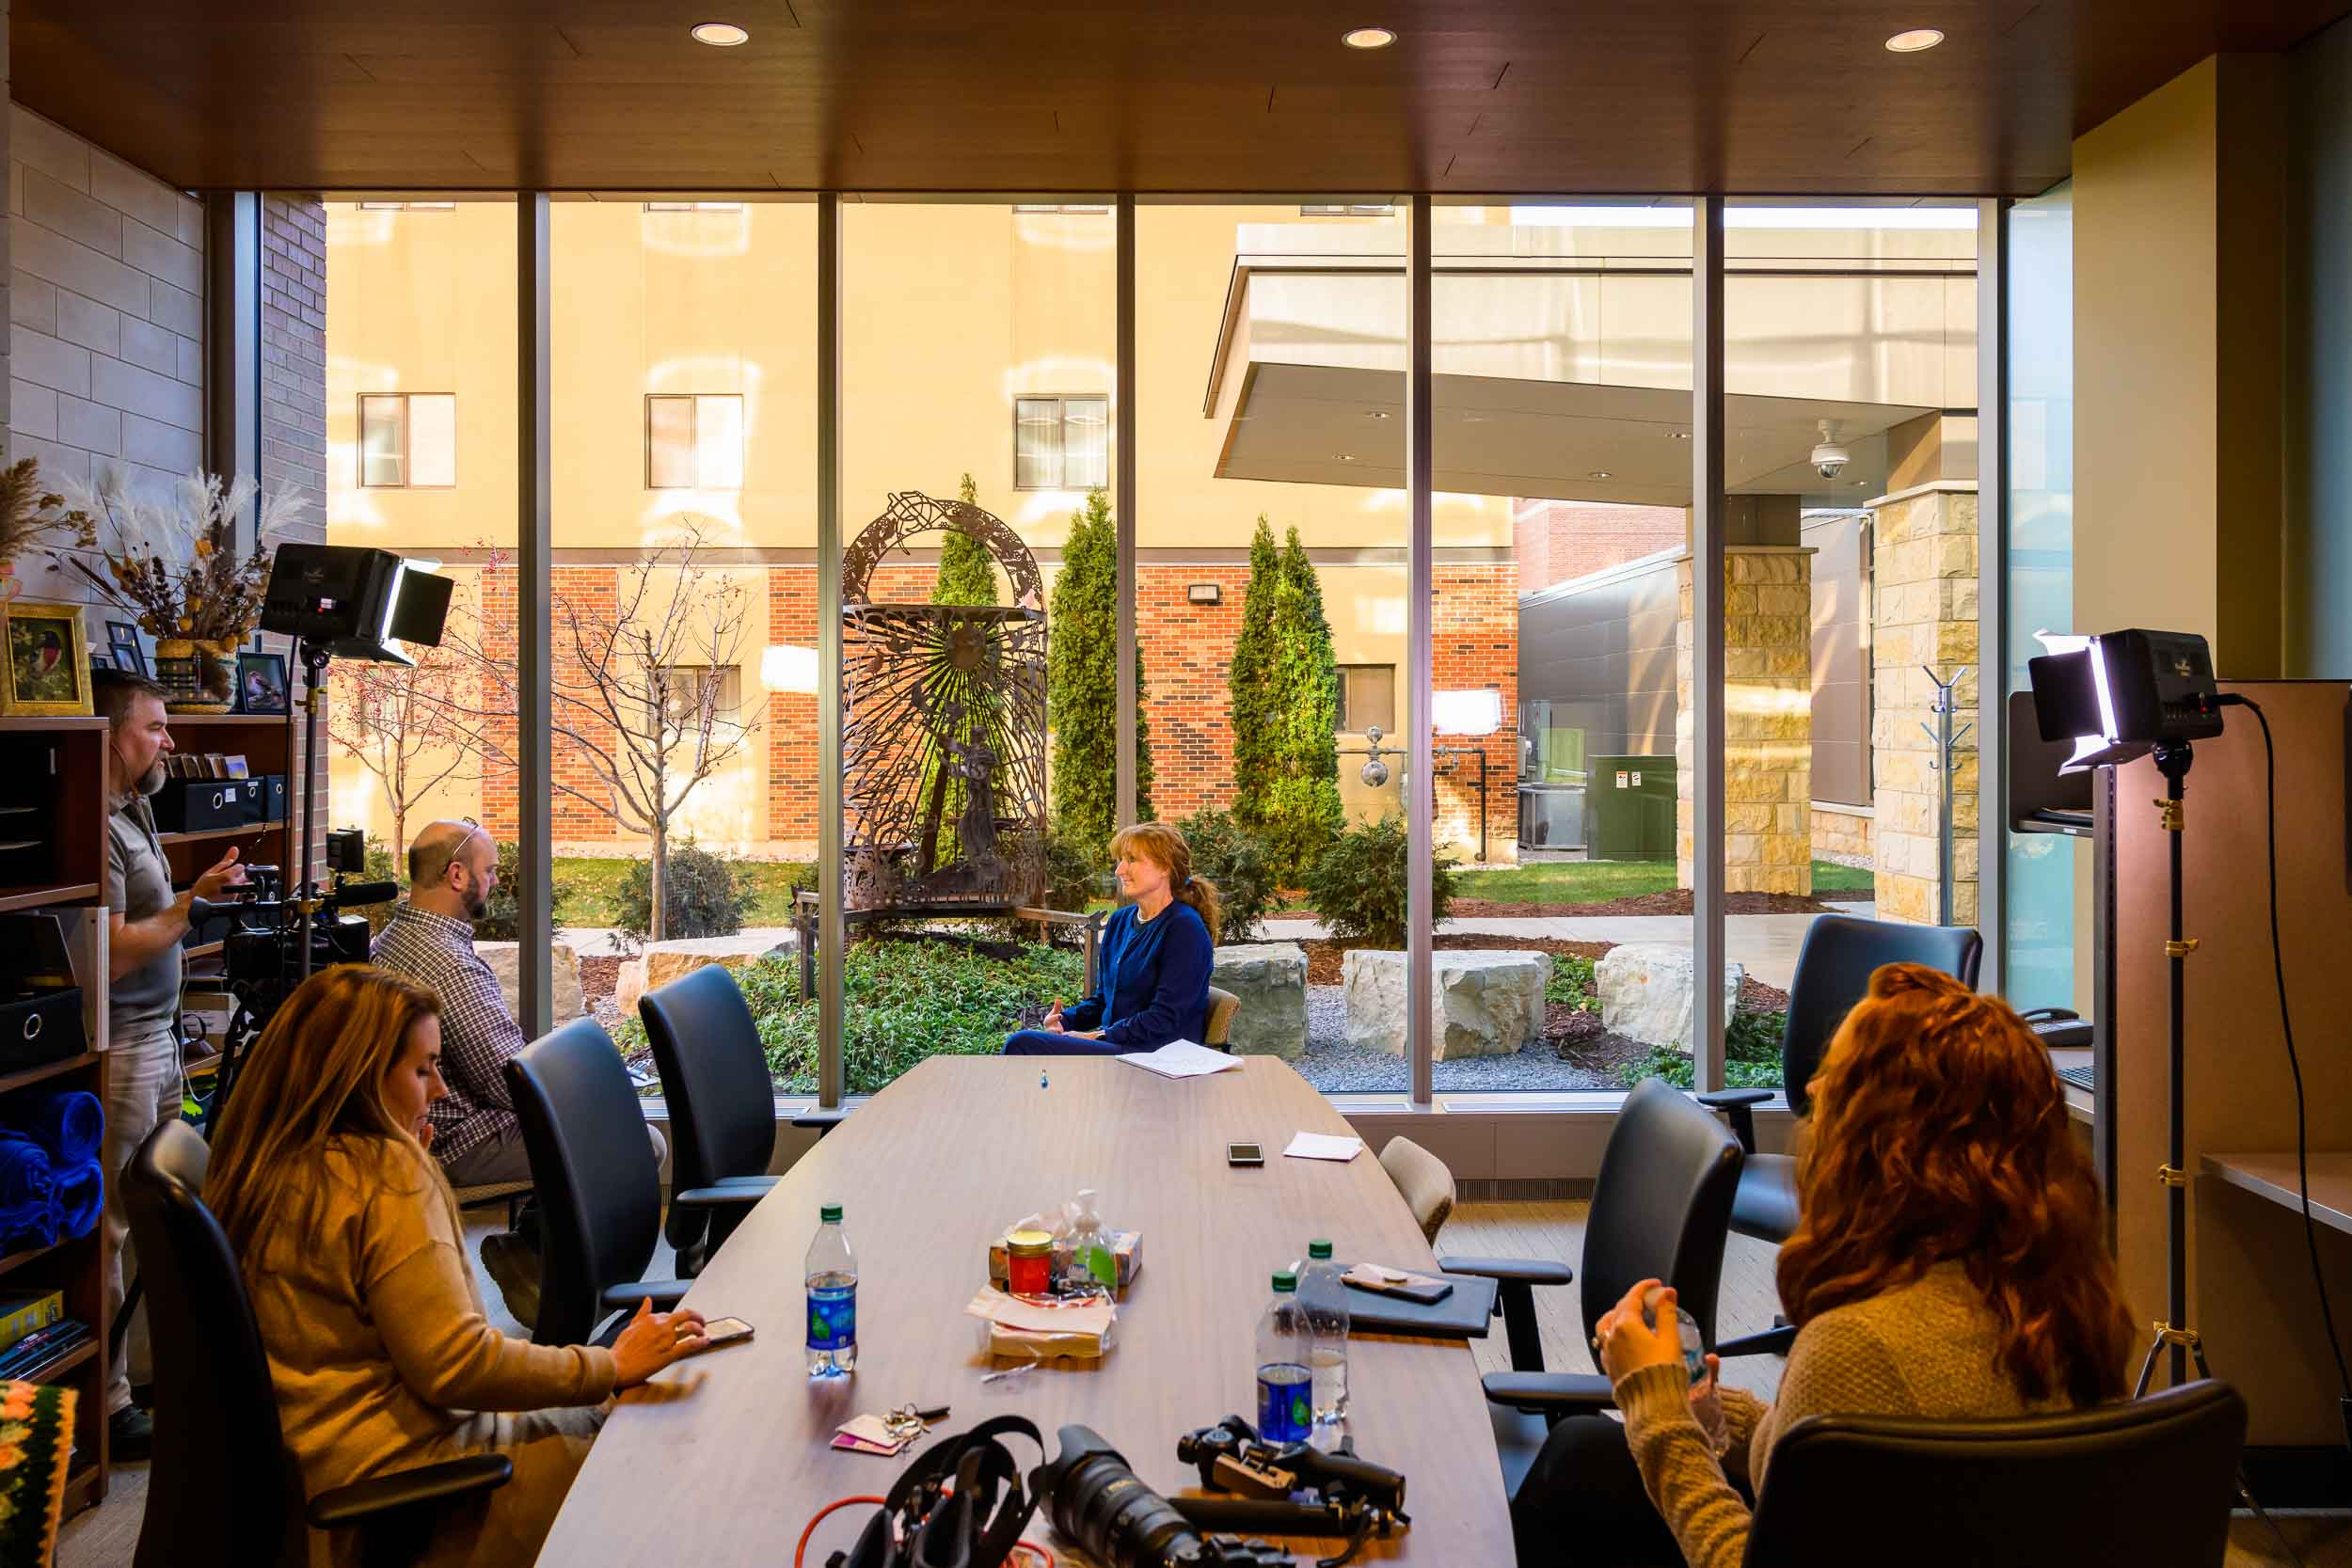 ascension-behind-the-scenes-business-commercial-professional-photographer-graham-images-washatka-wisconsin-appleton-green-bay-010-1528-blog.jpg